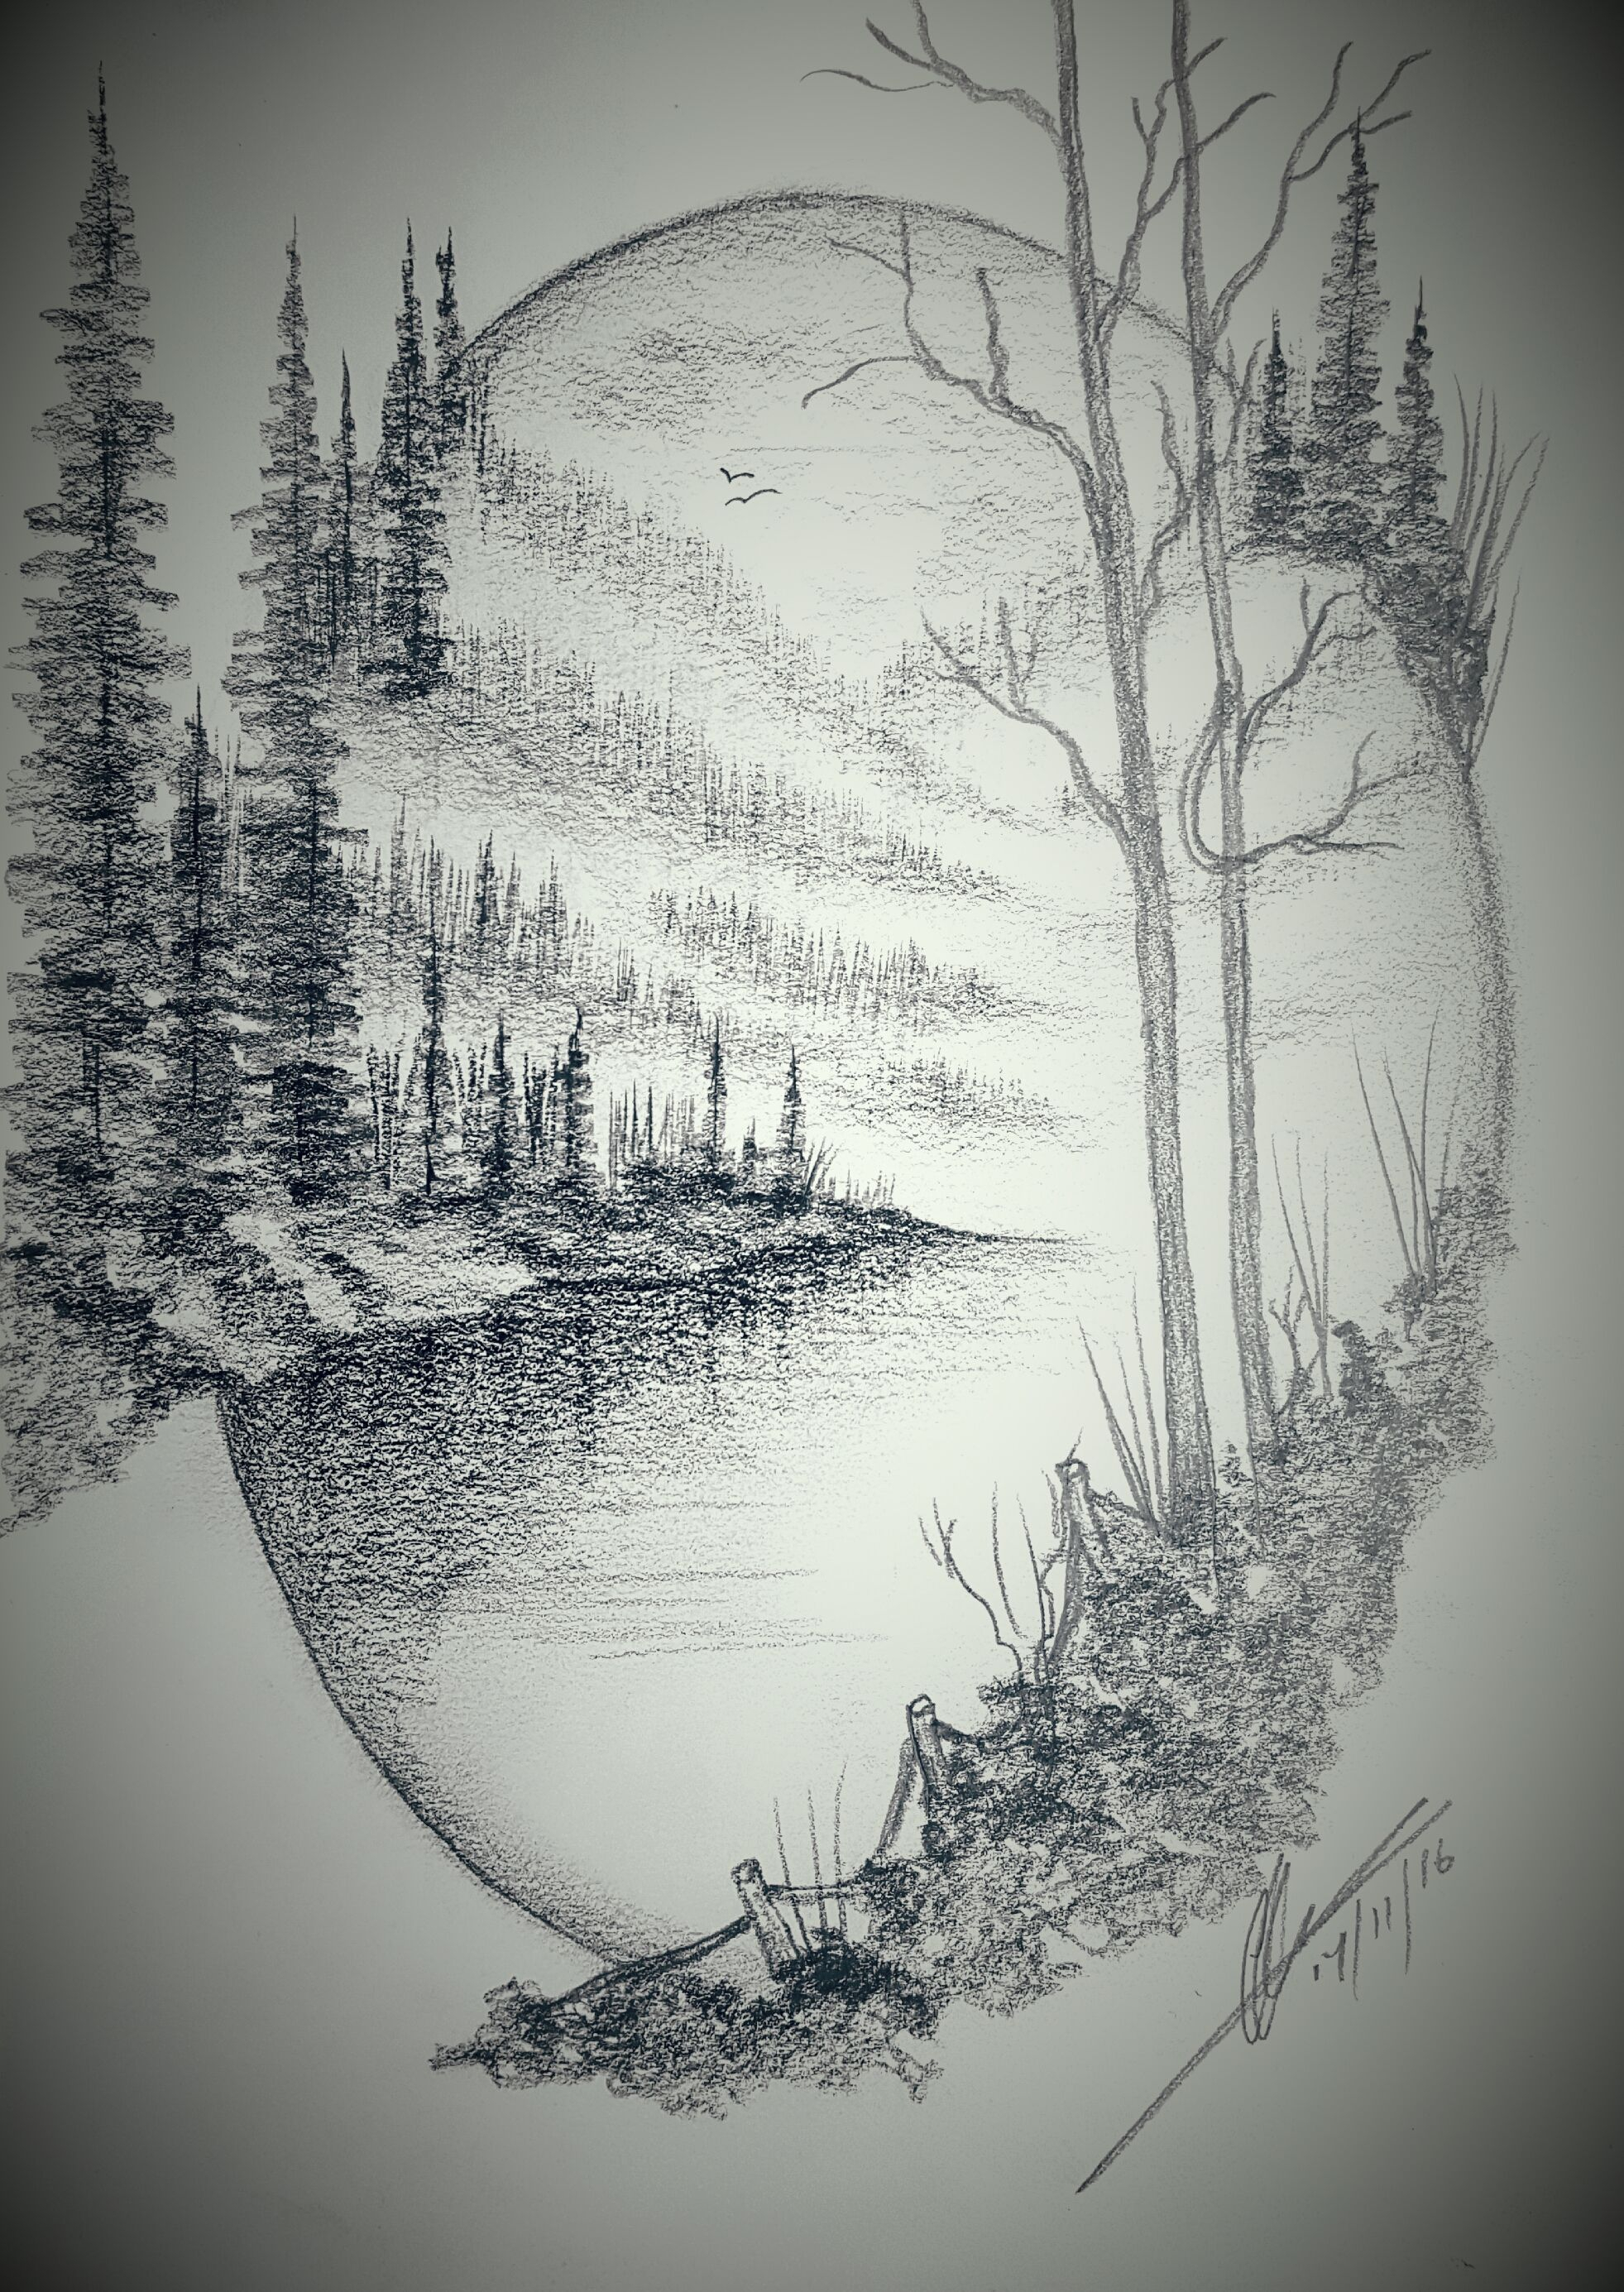 Lovely Landscape Drawing Ideas Billedresultat For Landscape Drawing | Quilt regarding High Quality Landscape Drawing Ideas